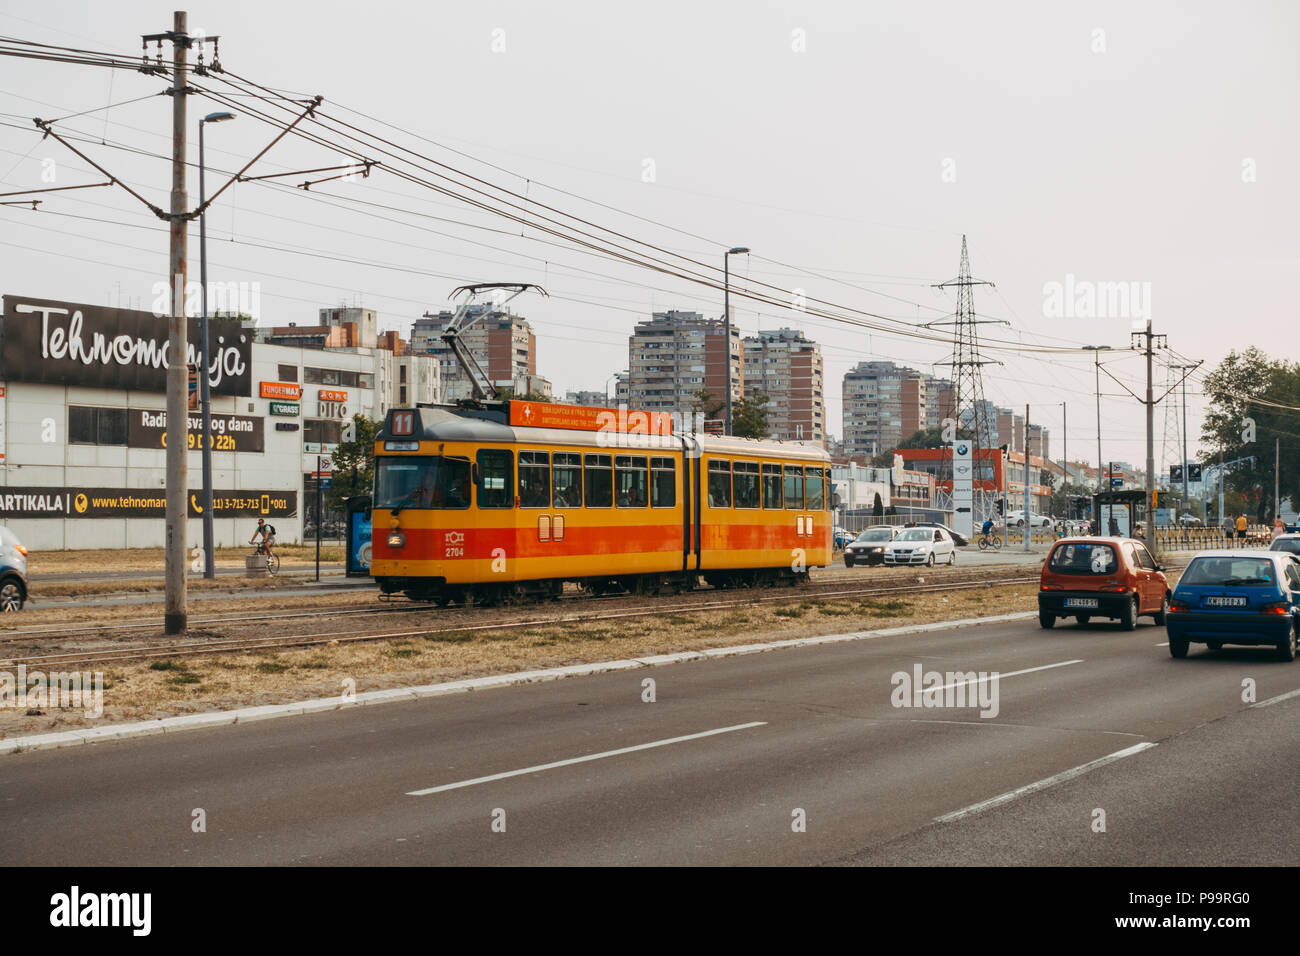 A tram passes traffic in the median of a trunk road in Belgrade, Serbia - Stock Image